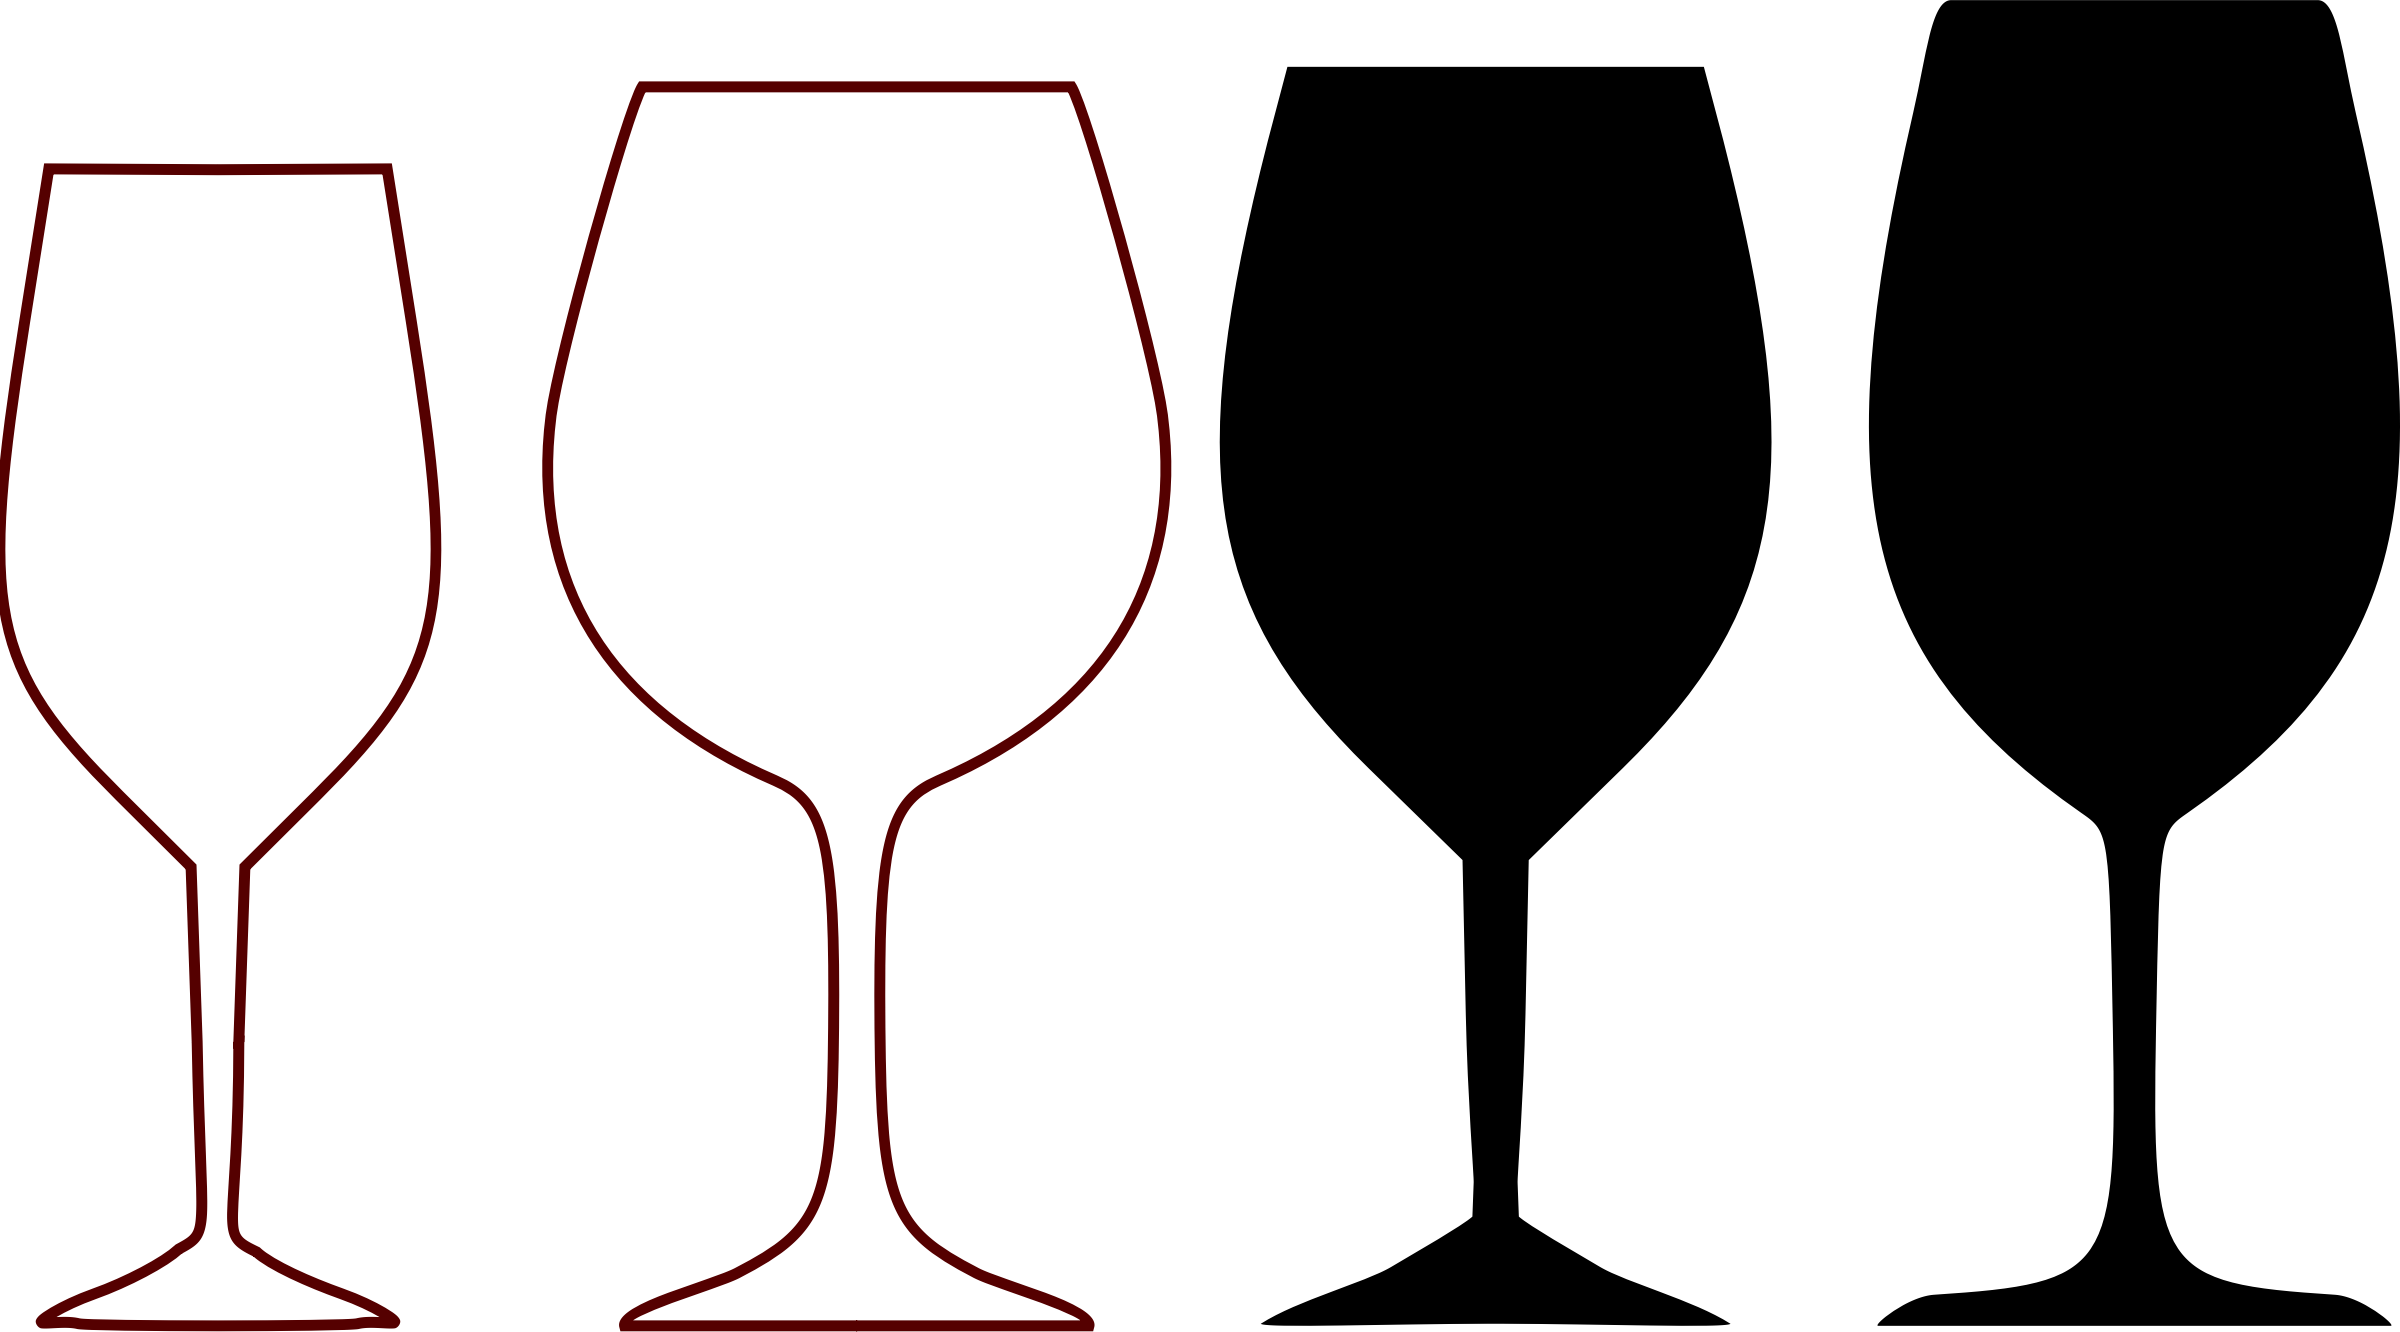 Shapes by qpad and. Silhouette clipart wine glass